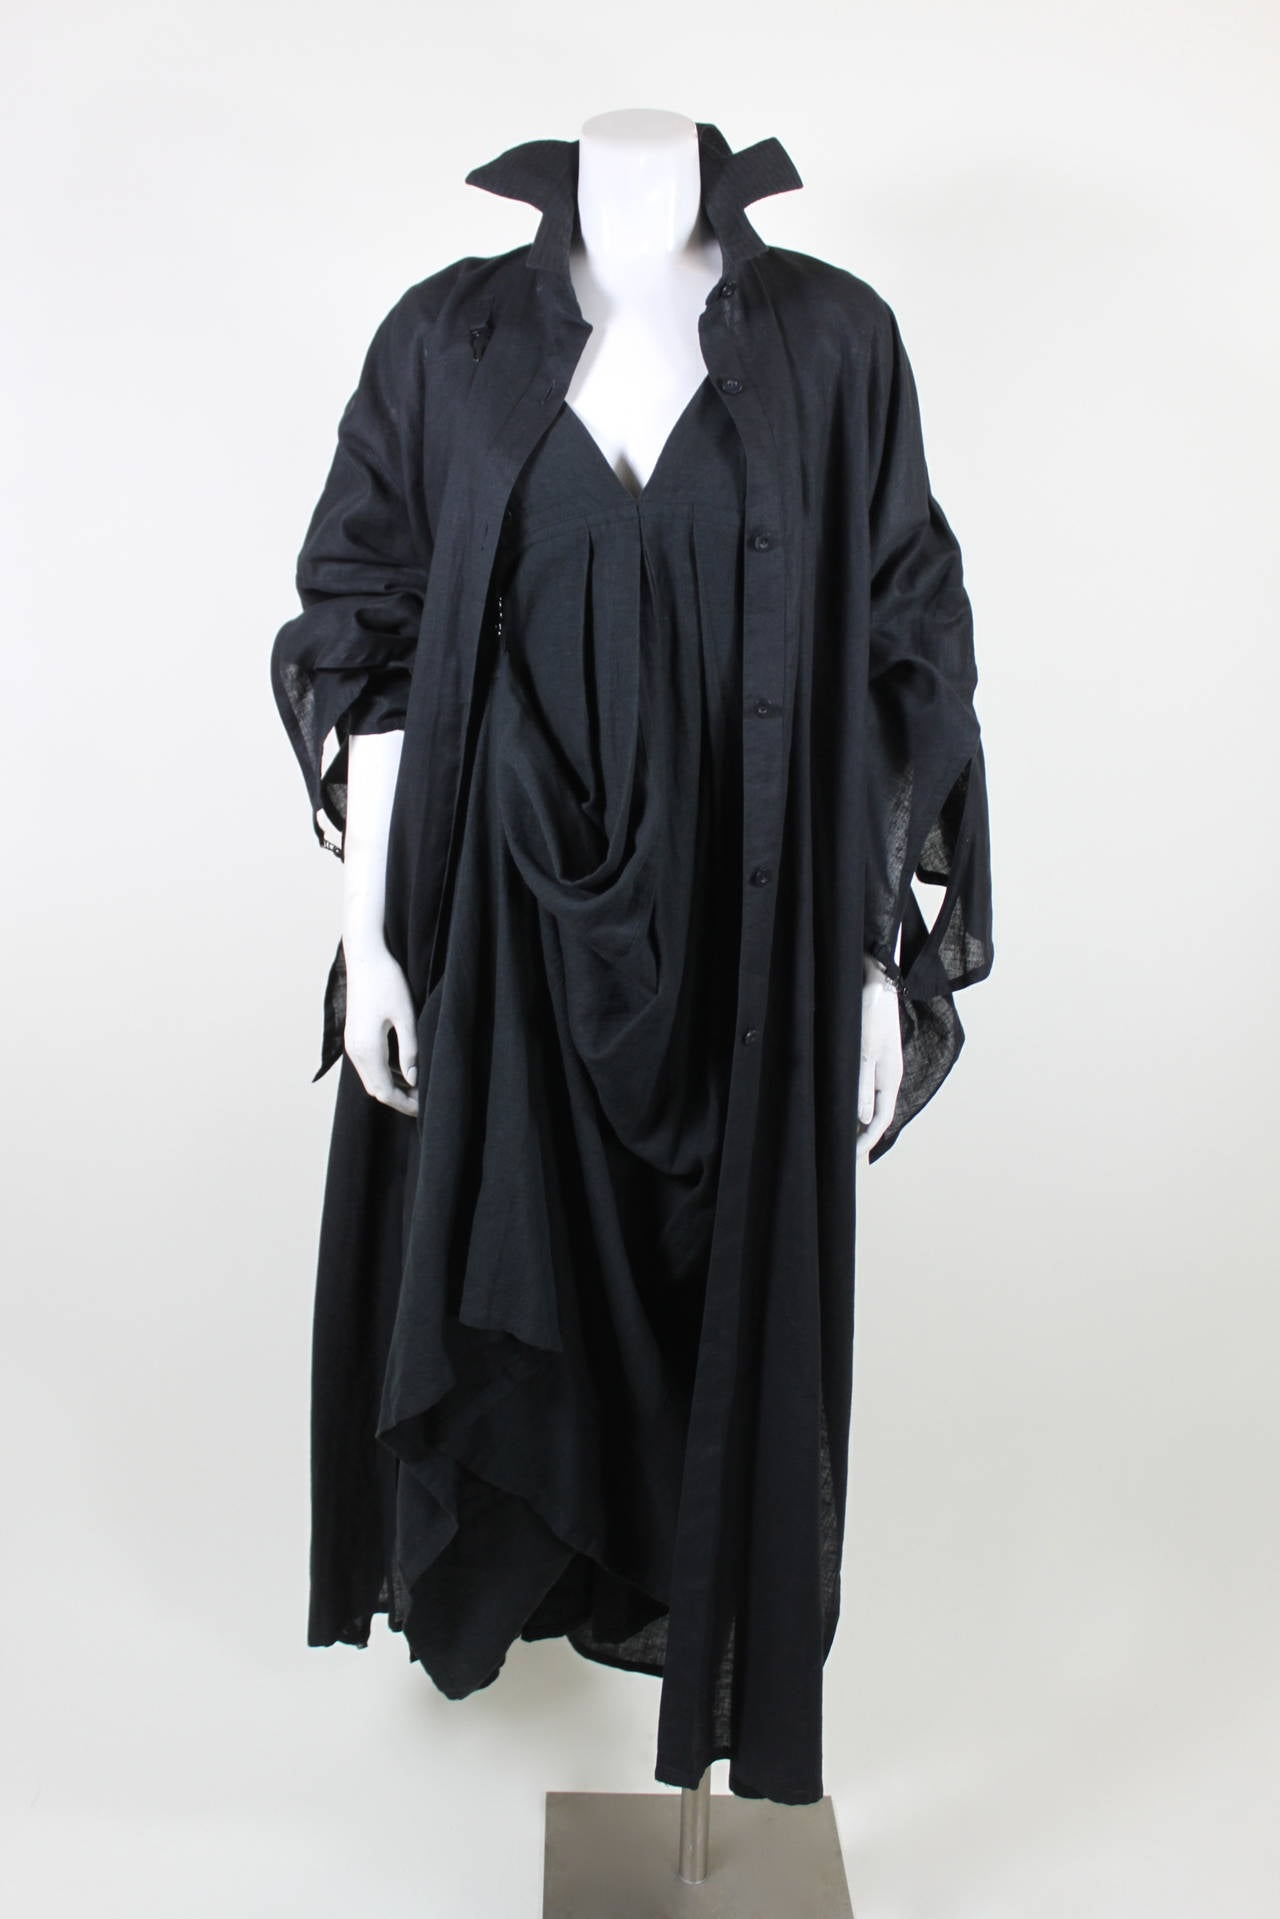 Kansai Black Linen Dress with Cocoon Coat 9